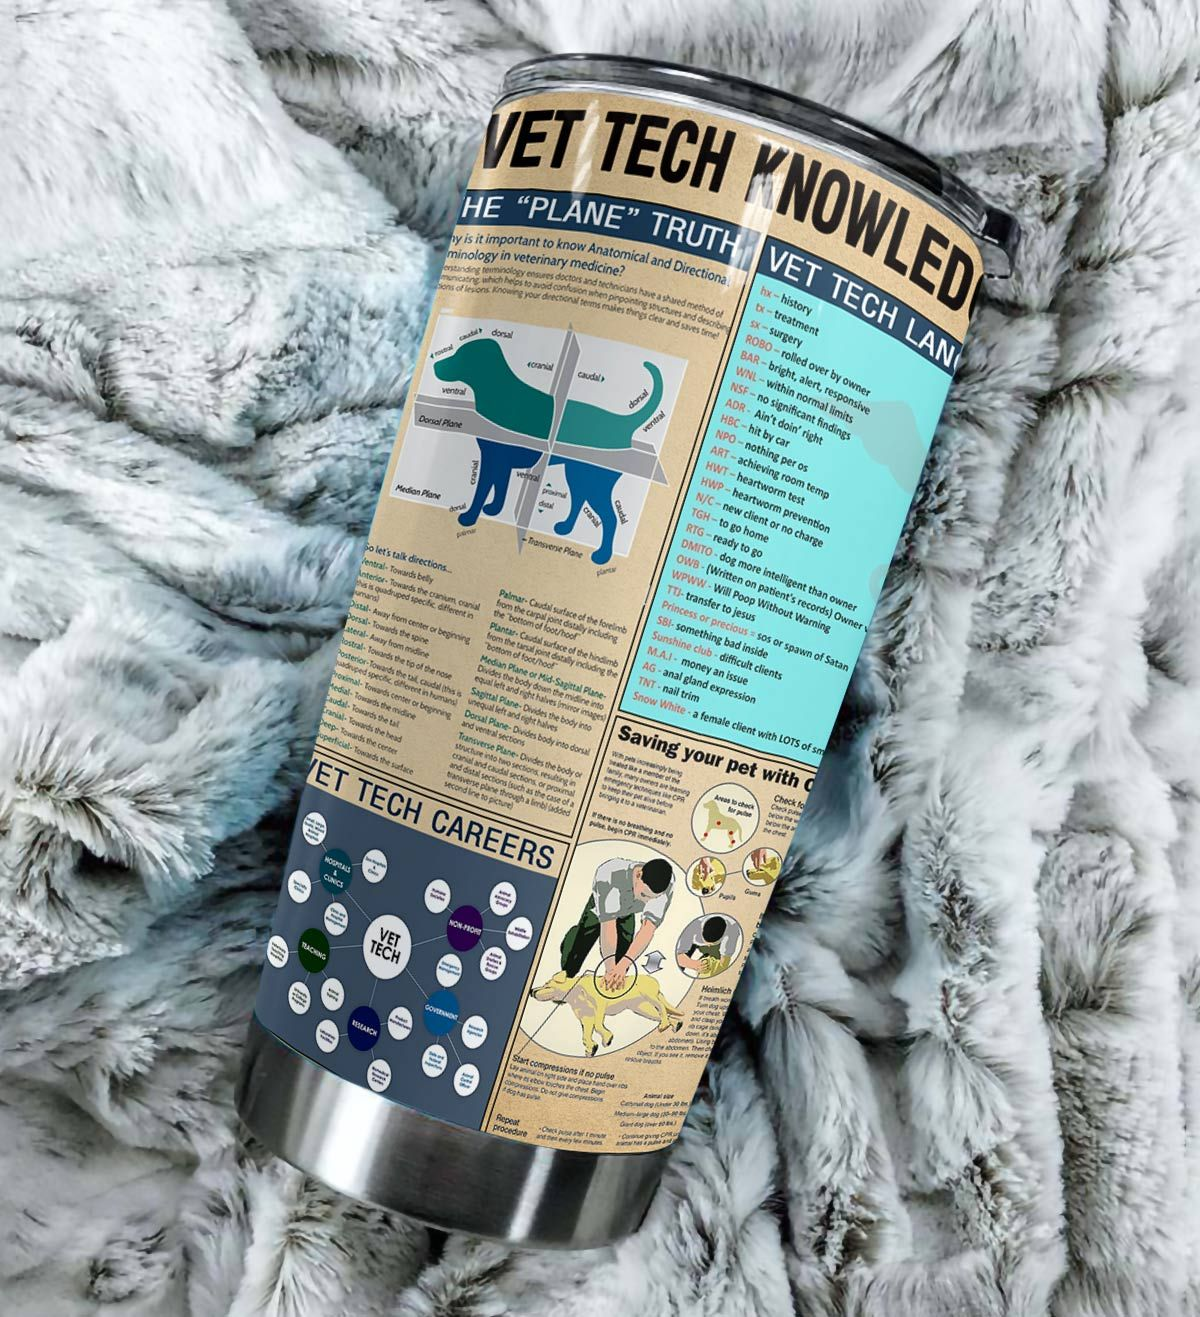 Vet tech knowledge all over printed tumbler 4